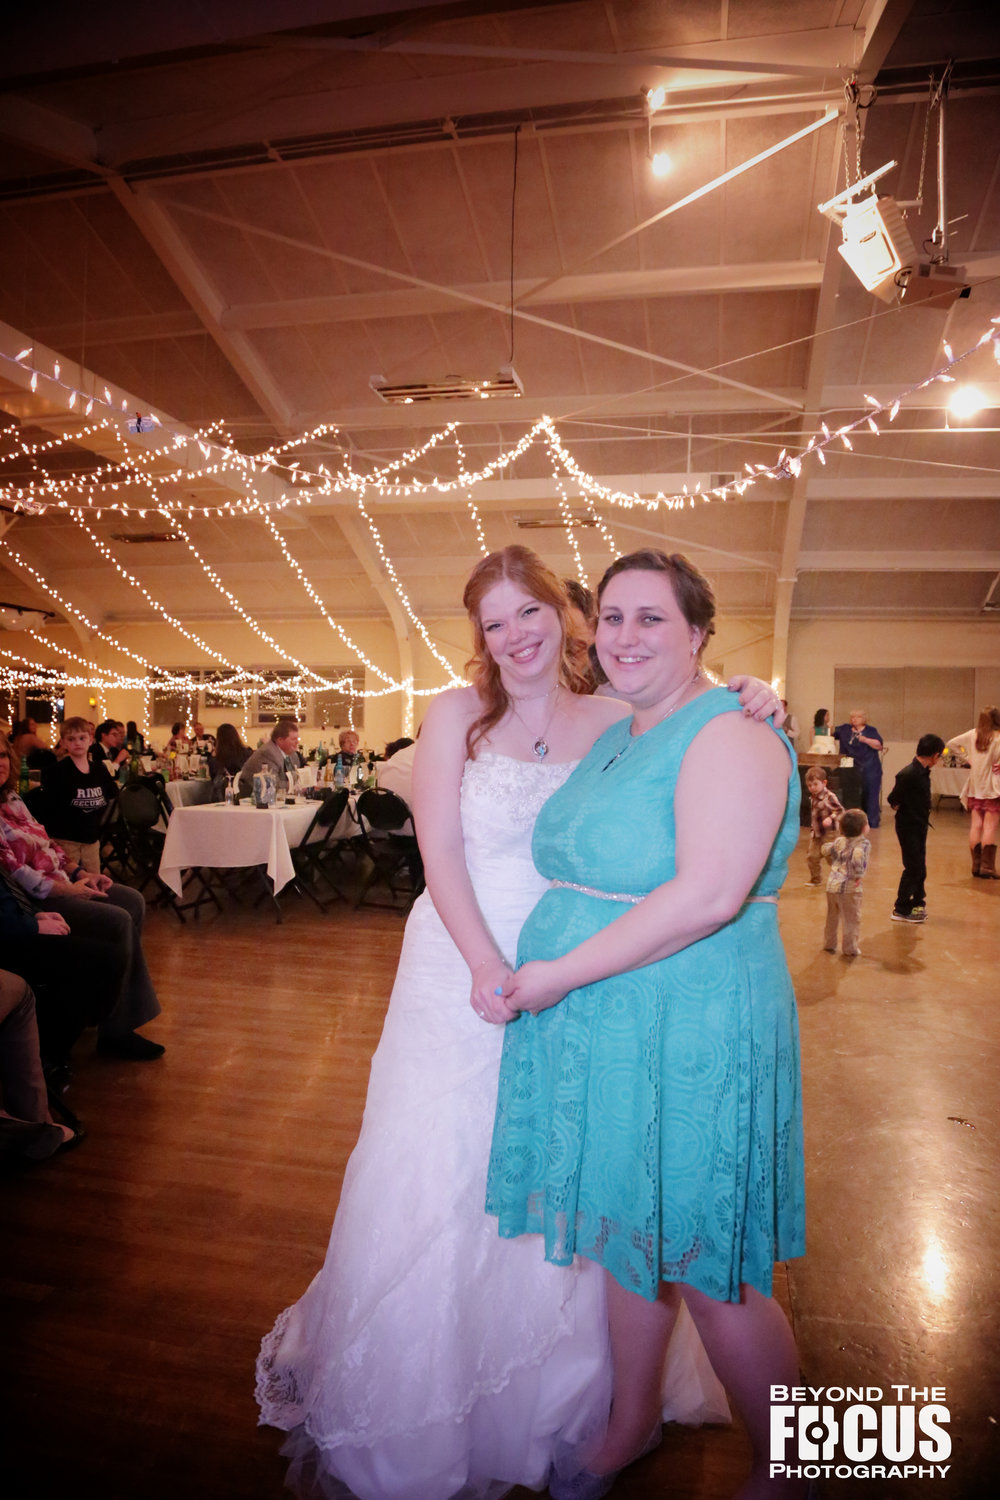 Alex_Katie_WeddingReception__146.jpg